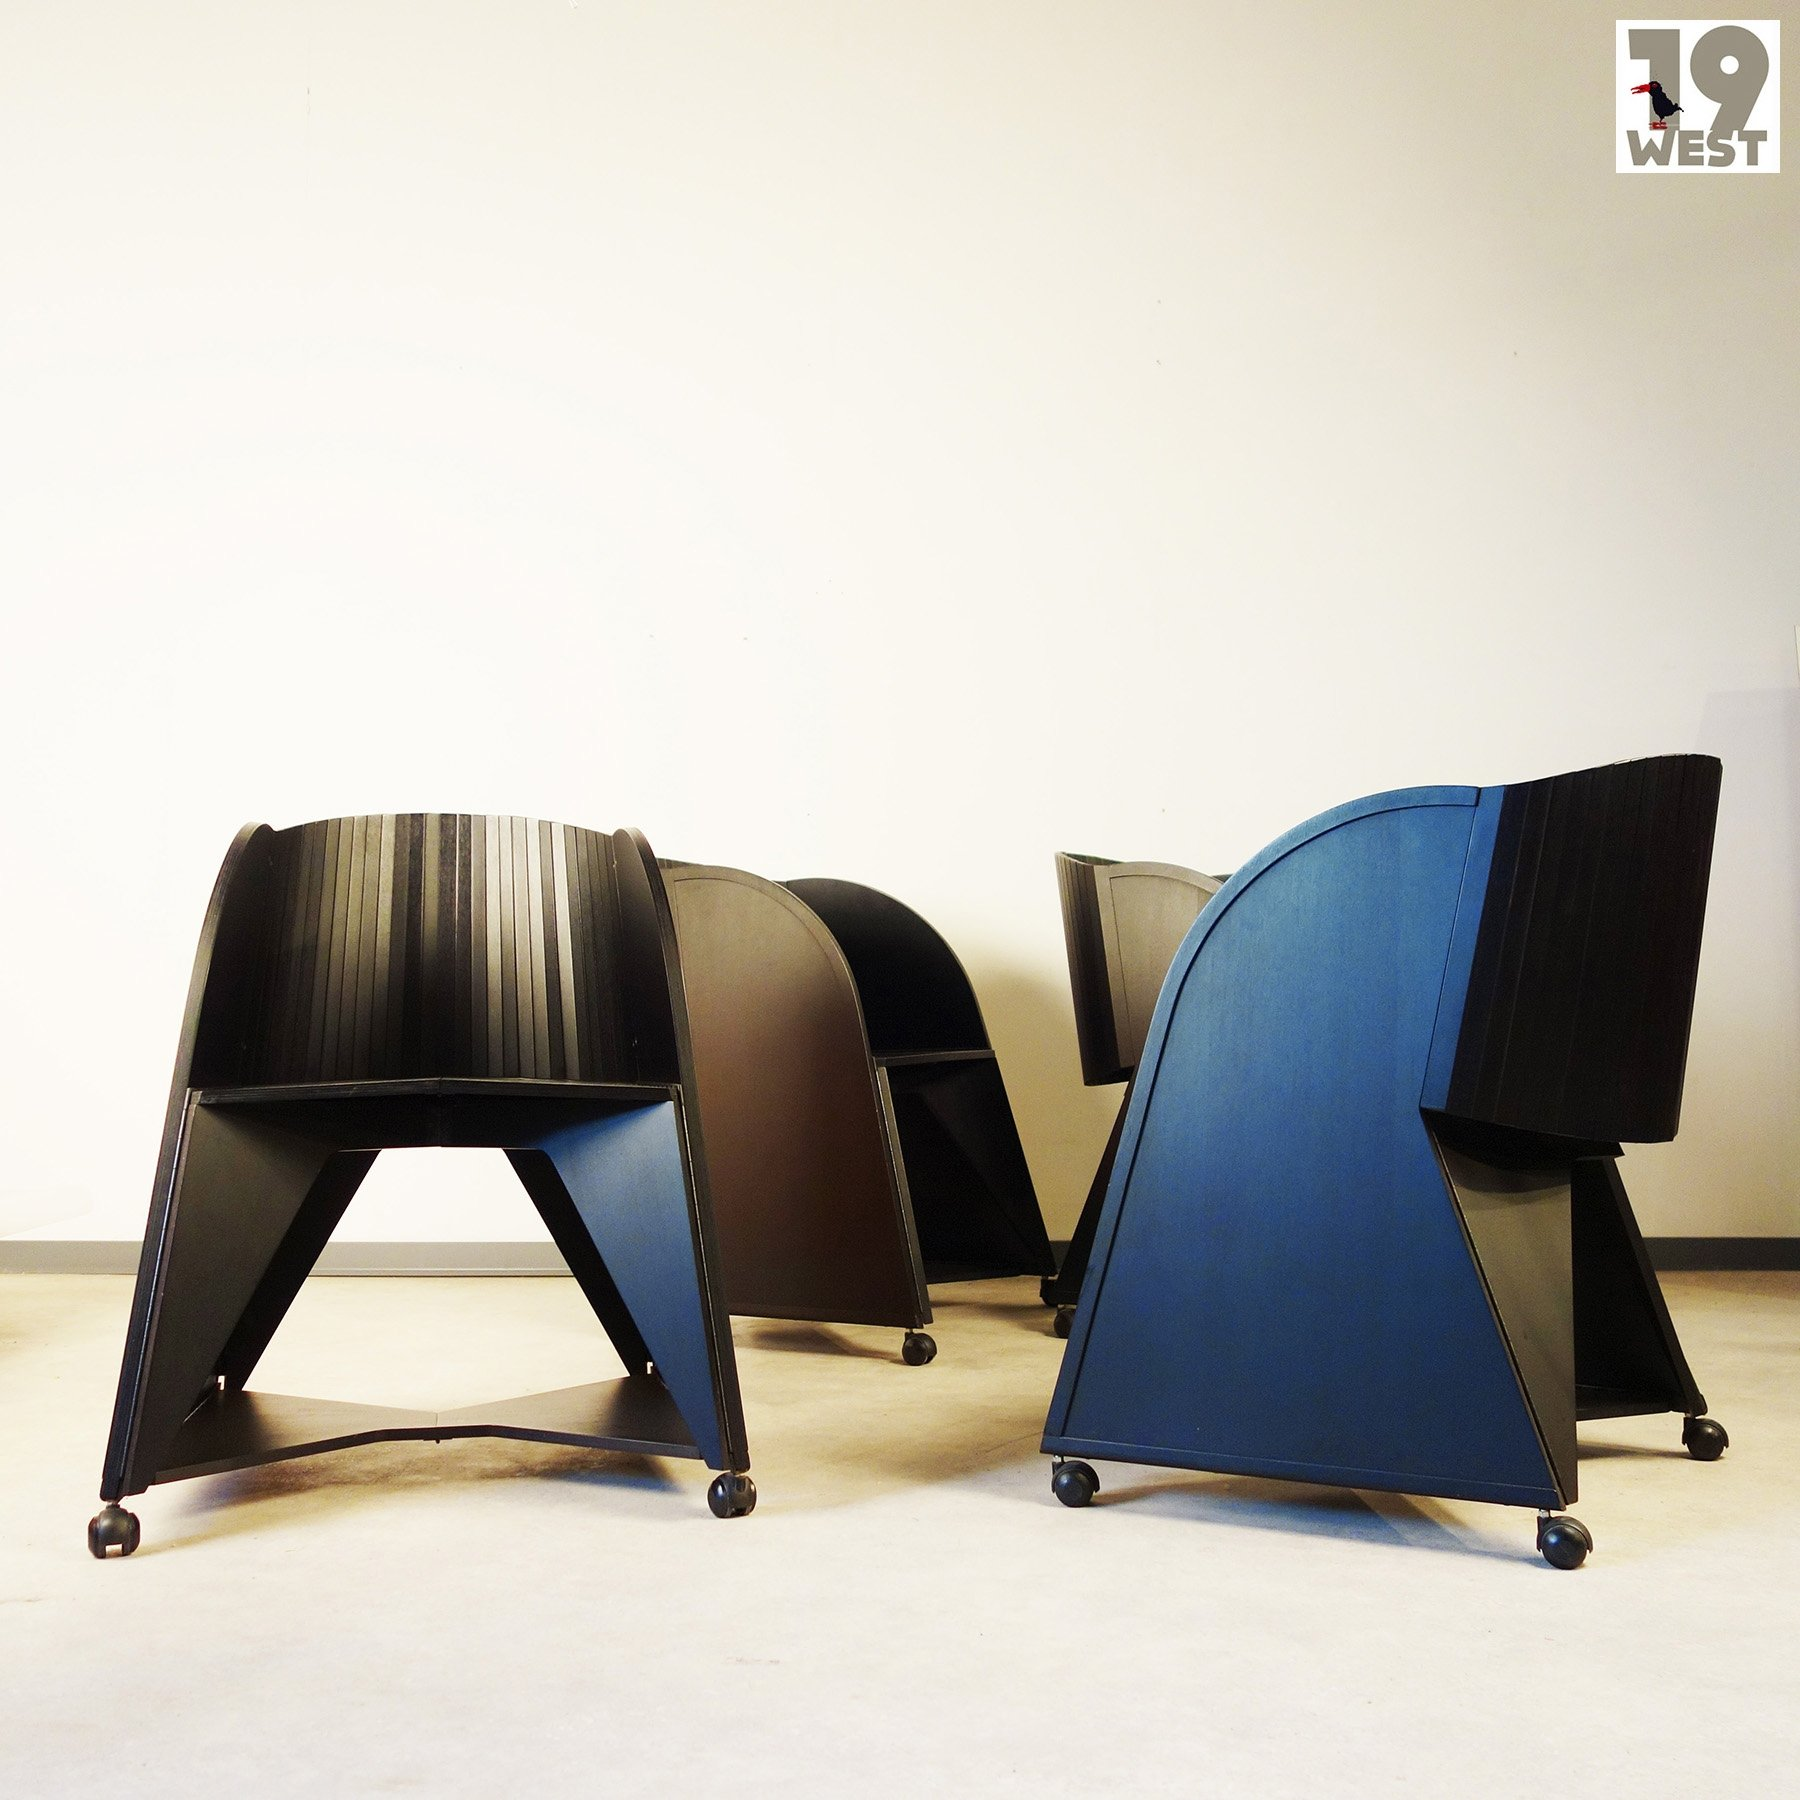 Set Of 4 Matrix Folding Chair Dinner Chairs From The